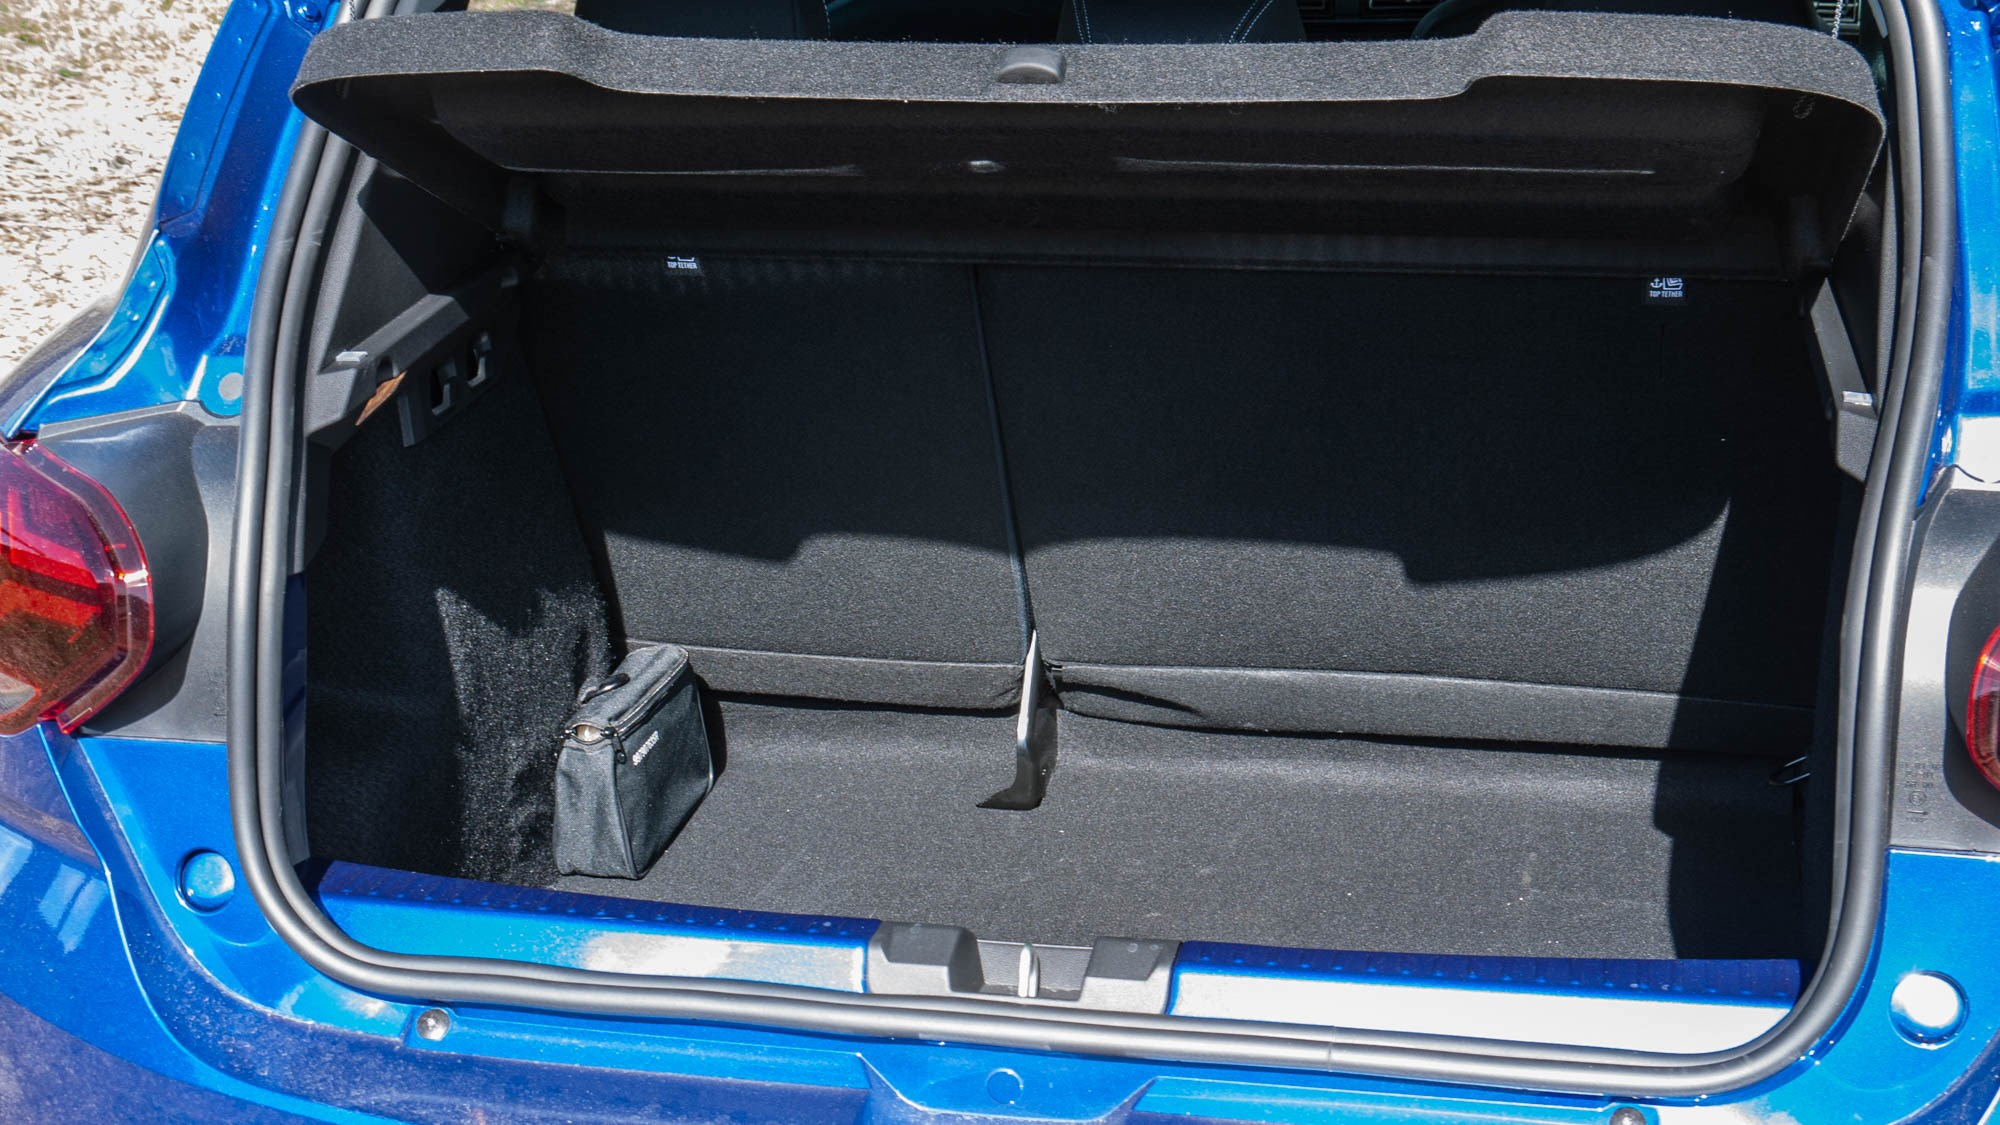 2021 Dacia Sandero boot space